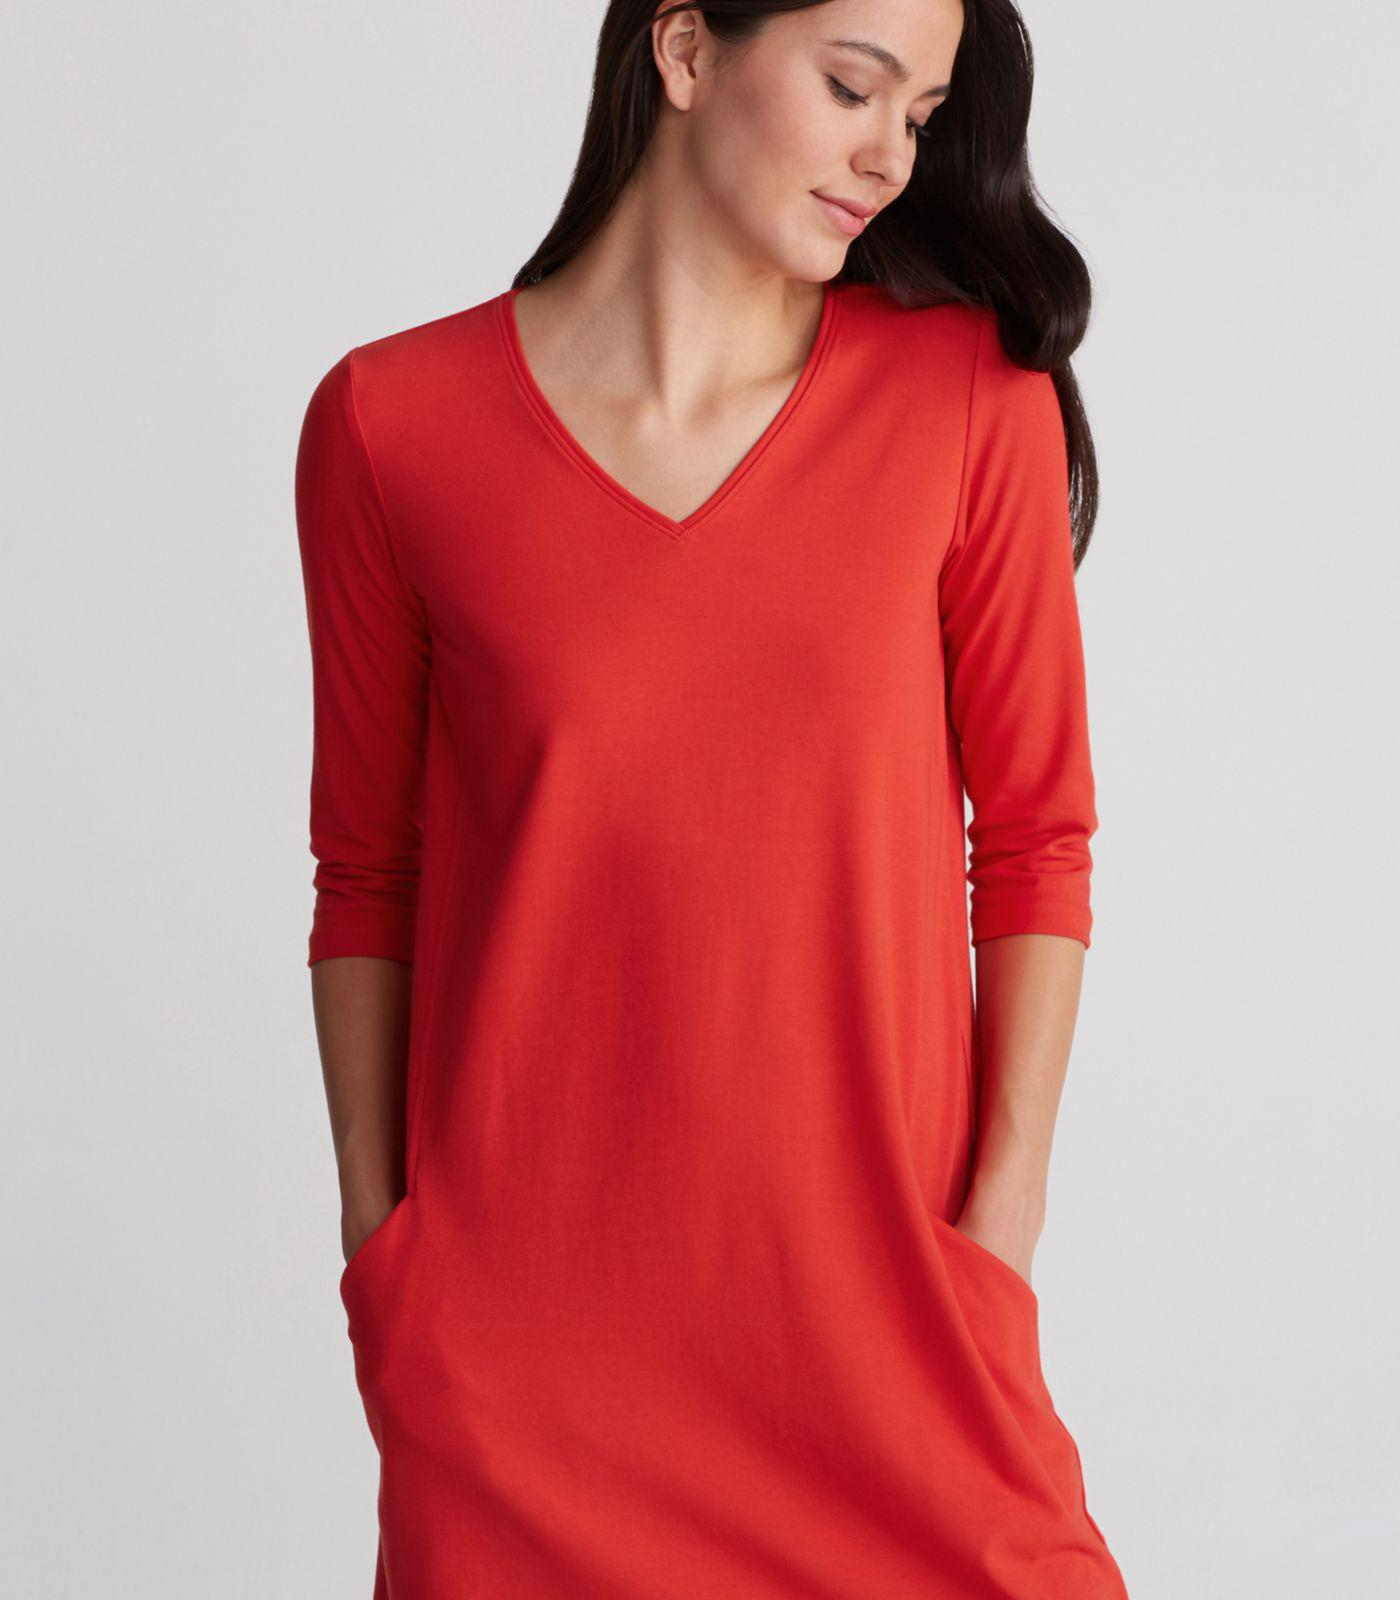 f2cde3a25c078 Eileen Fisher Organic Cotton Stretch Jersey V-neck A-line Dress in ...